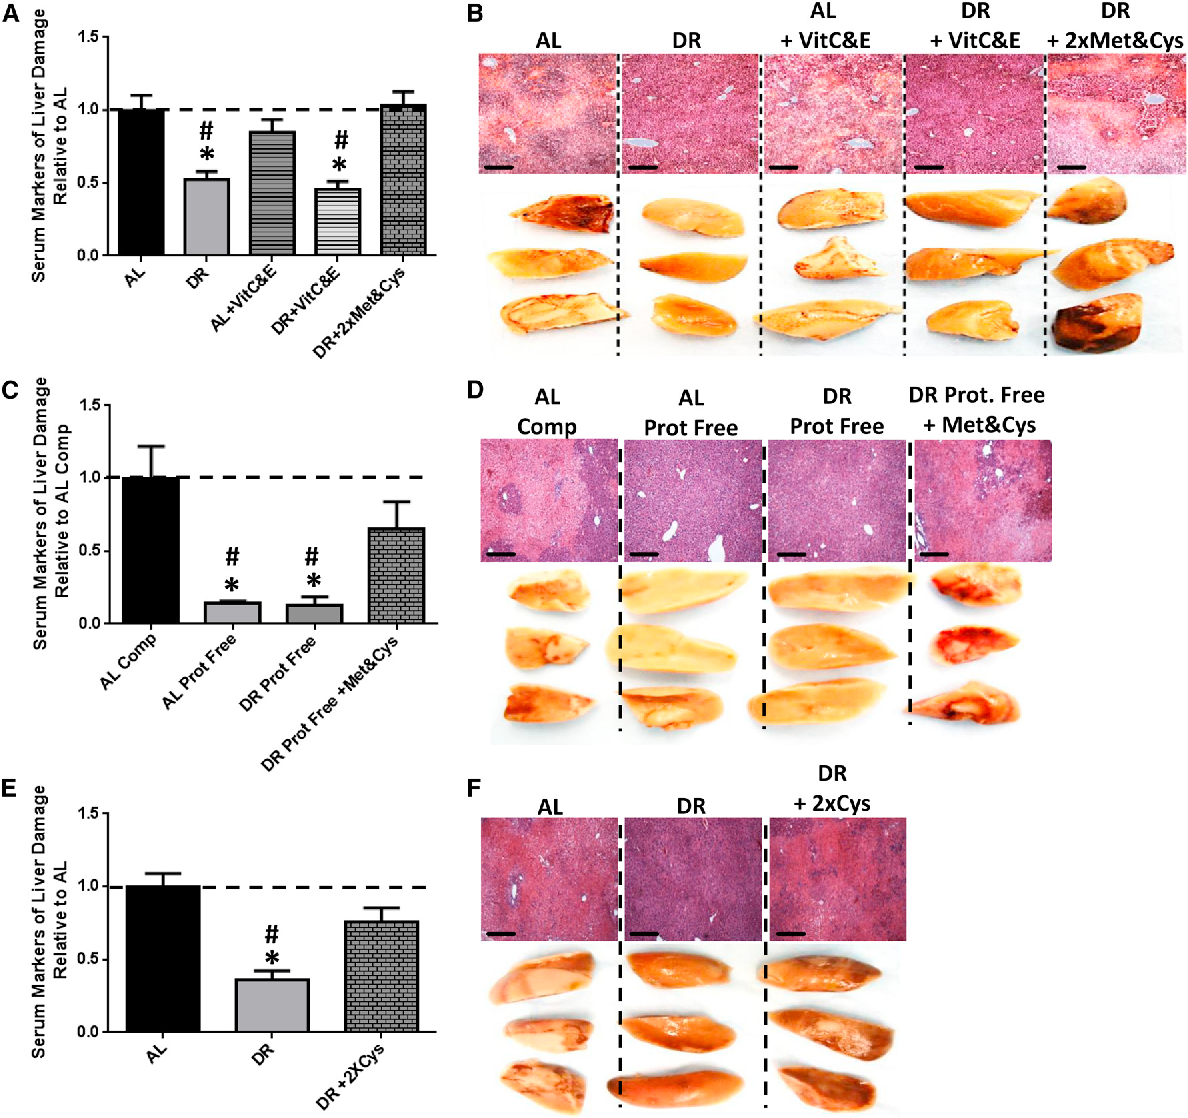 Figure 2. Sulfur Amino Acids Control the Benefits of DR and PR (A and B) Serum markers of liver damage (A) and liver pathology after reperfusion (B) in mice (n = 5/group) preconditioned on complete diets fed AL or 50% DR ± supplementation with vitamins C&E or Met&Cys as indicated. Asterisk indicates the significance of the difference versus AL and pound sign versus DR + 23 Met&Cys; */#p < 0.05. (C and D) Serum markers of liver damage (C) and liver pathology after reperfusion (D) in mice (n = 5/group) preconditioned on complete (Comp) or protein-free (Prot. Free) diets fed AL or 35% DR with Met&Cys addition as indicated prior to hepatic IRI. Asterisk indicates the significance of the difference versus AL complete and pound sign versus DR Prot. Free + Met&Cys; */# p < 0.05. (E and F) Serummarkers of liver damage (E) and liver pathology after reperfusion (F) in mice (n = 5/group) preconditioned on complete diets fed AL or 50%DRwith 23Cys added as indicated. Asterisk indicates the significance of the difference versus AL and pound sign versus DR + 23Cys; */#p < 0.05. All error bars SEM. See also Figure S2.